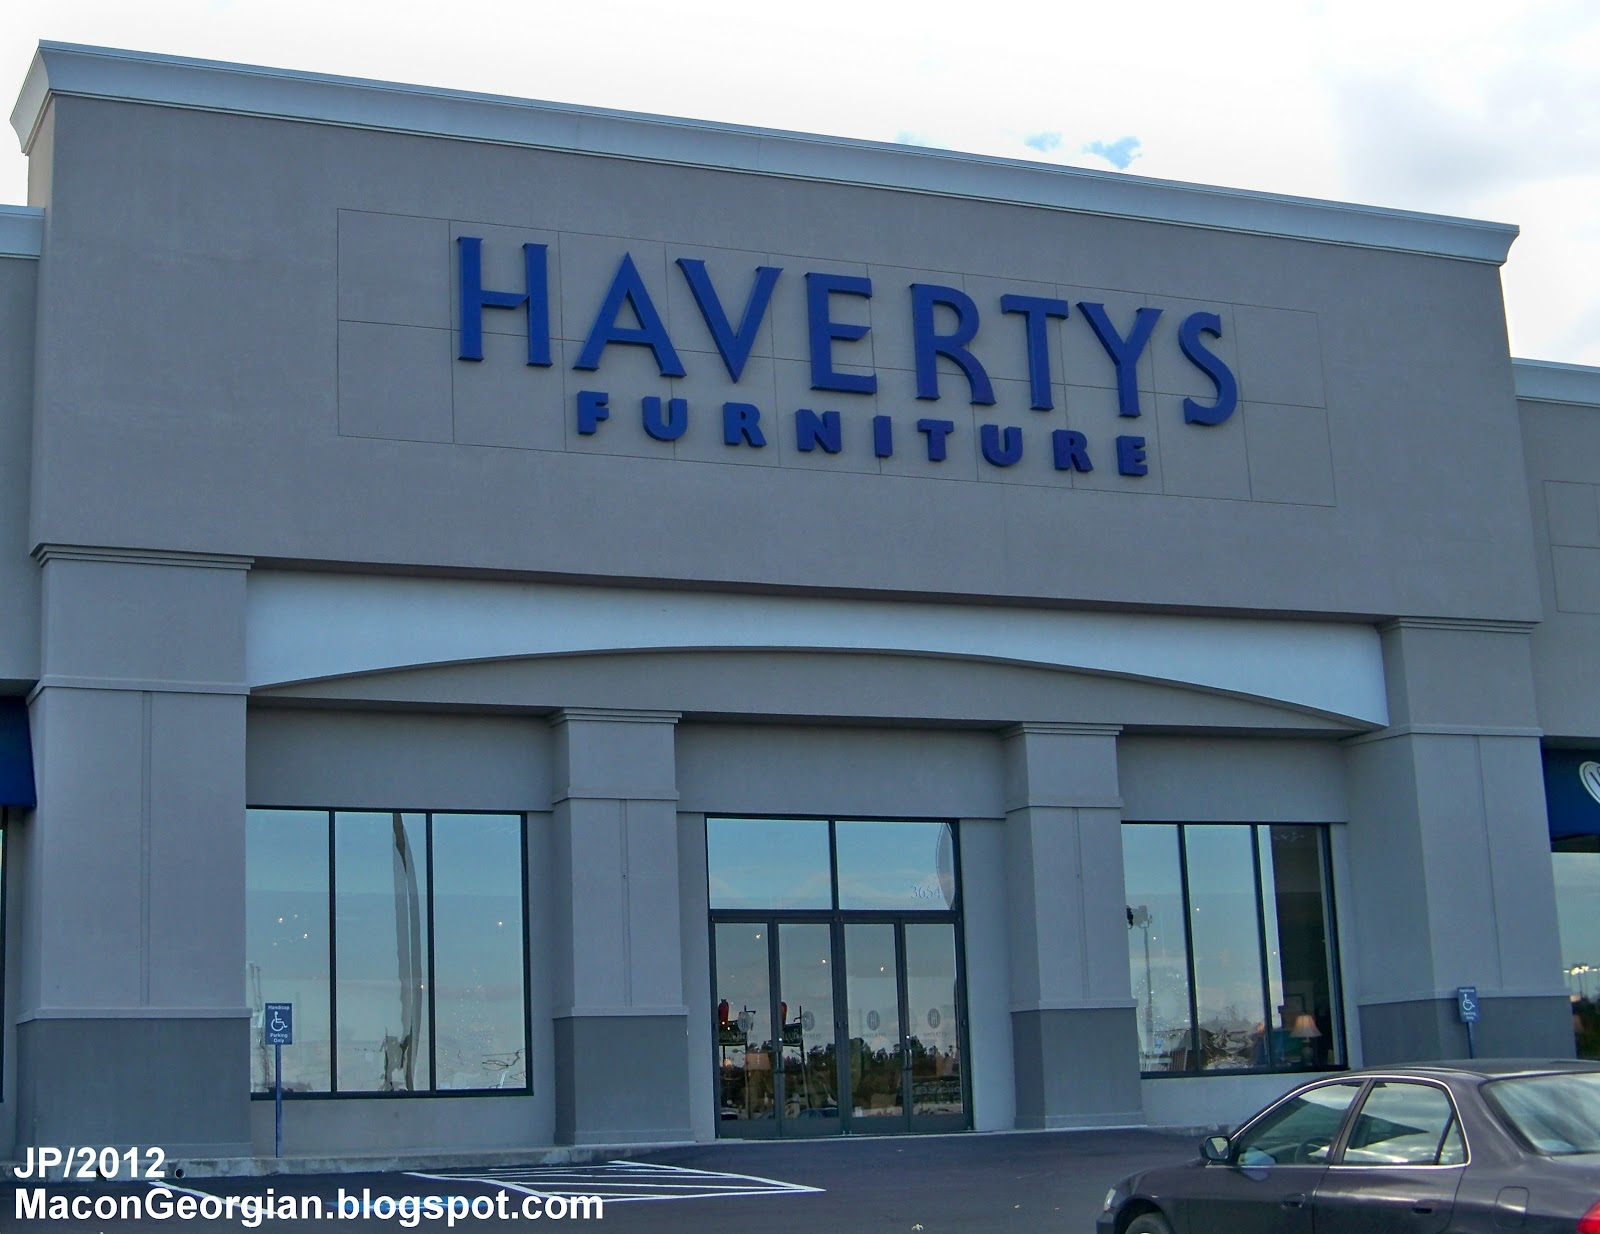 Apply online for careers at Havertys. Our proud tradition. It's astonishing to think of all that's changed since , when J.J. Haverty founded Haverty Furniture Company in downtown Atlanta.